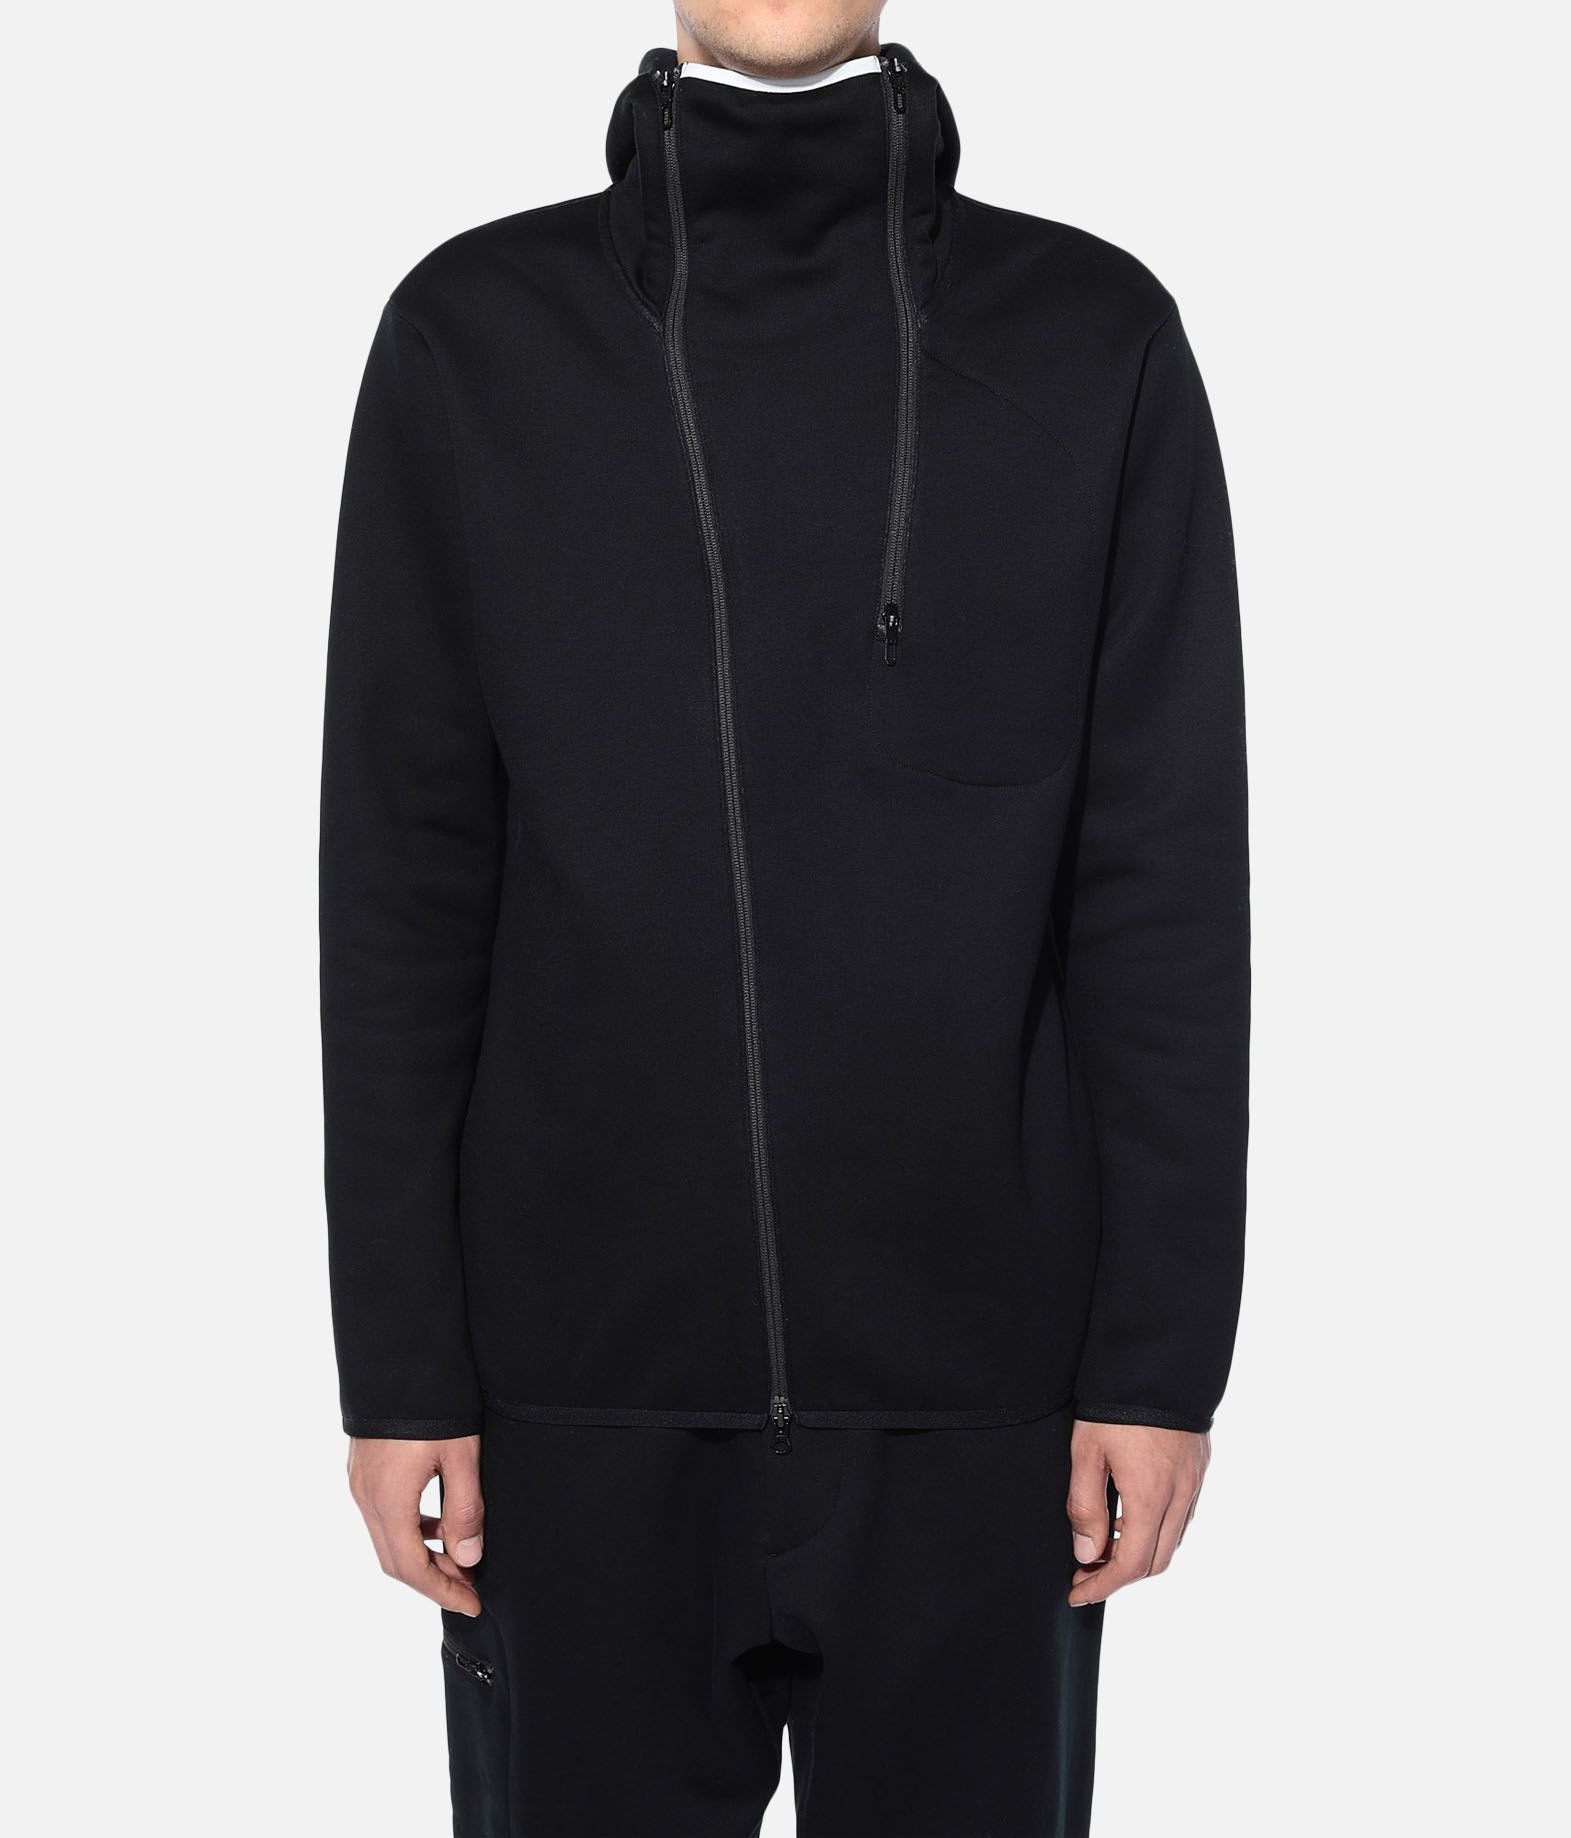 Y-3 Y-3 Binding Track Jacket Track top メンズ r